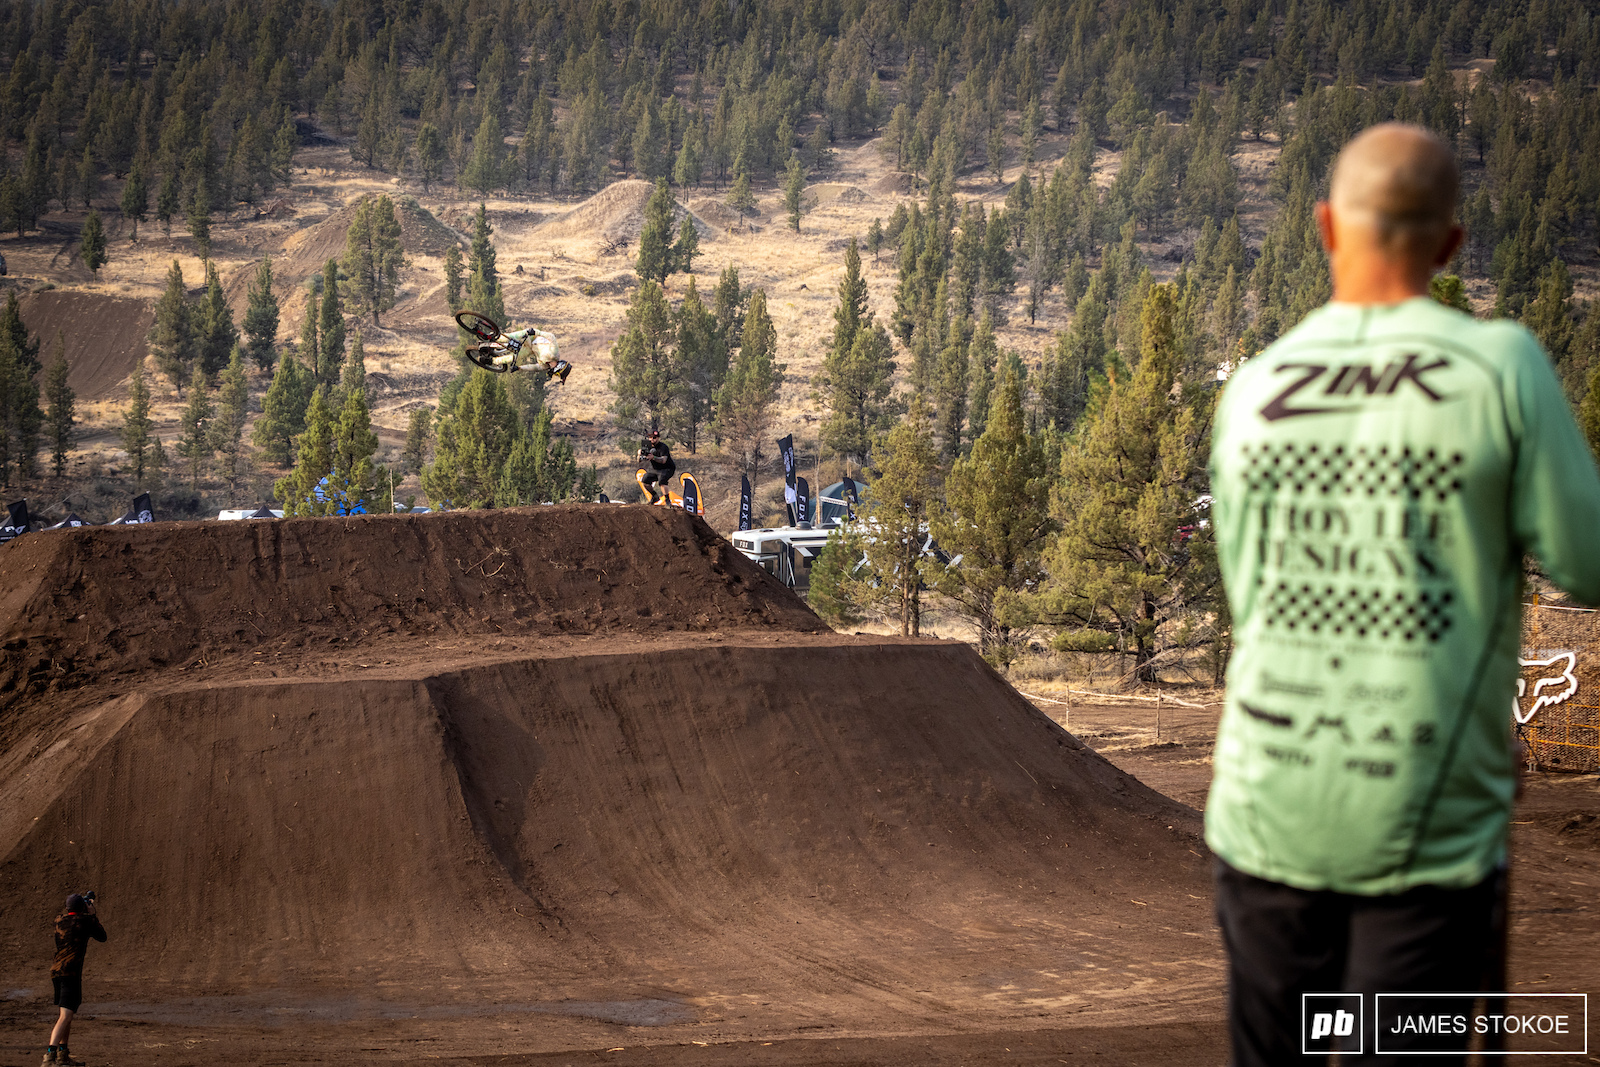 Cam Zink watching on as Dylan spins his way to a smooth landing.